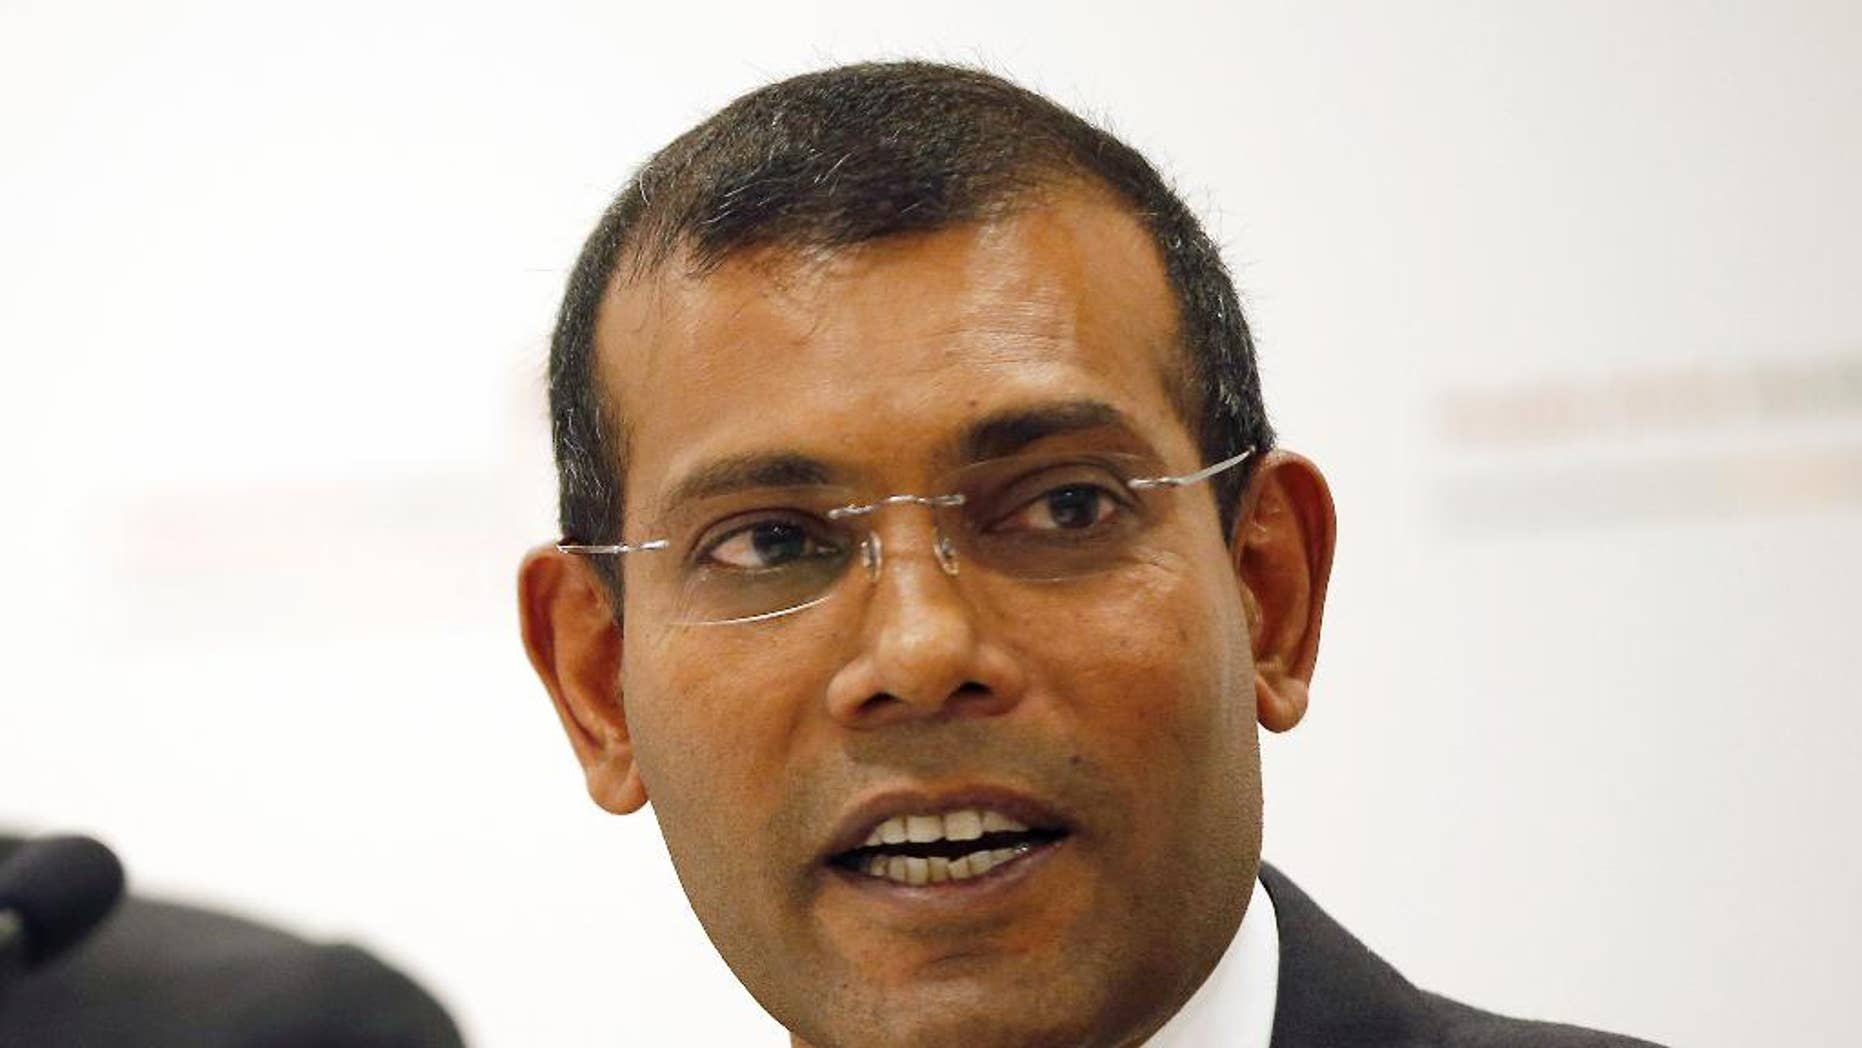 FILE - In this Monday, Jan. 25, 2016, file photo, former Maldives president Mohamed Nasheed speaks during a press conference in London. Nasheed, the first democratically elected president of the Maldives, said Tuesday from exile in Britain that he has an agreement with the country's former strongman Maumoon Abdul Gayoom to counter the current president President Yameen Abdul Gayoom, who is increasing his stranglehold on power. (AP Photo/Alastair Grant, File)